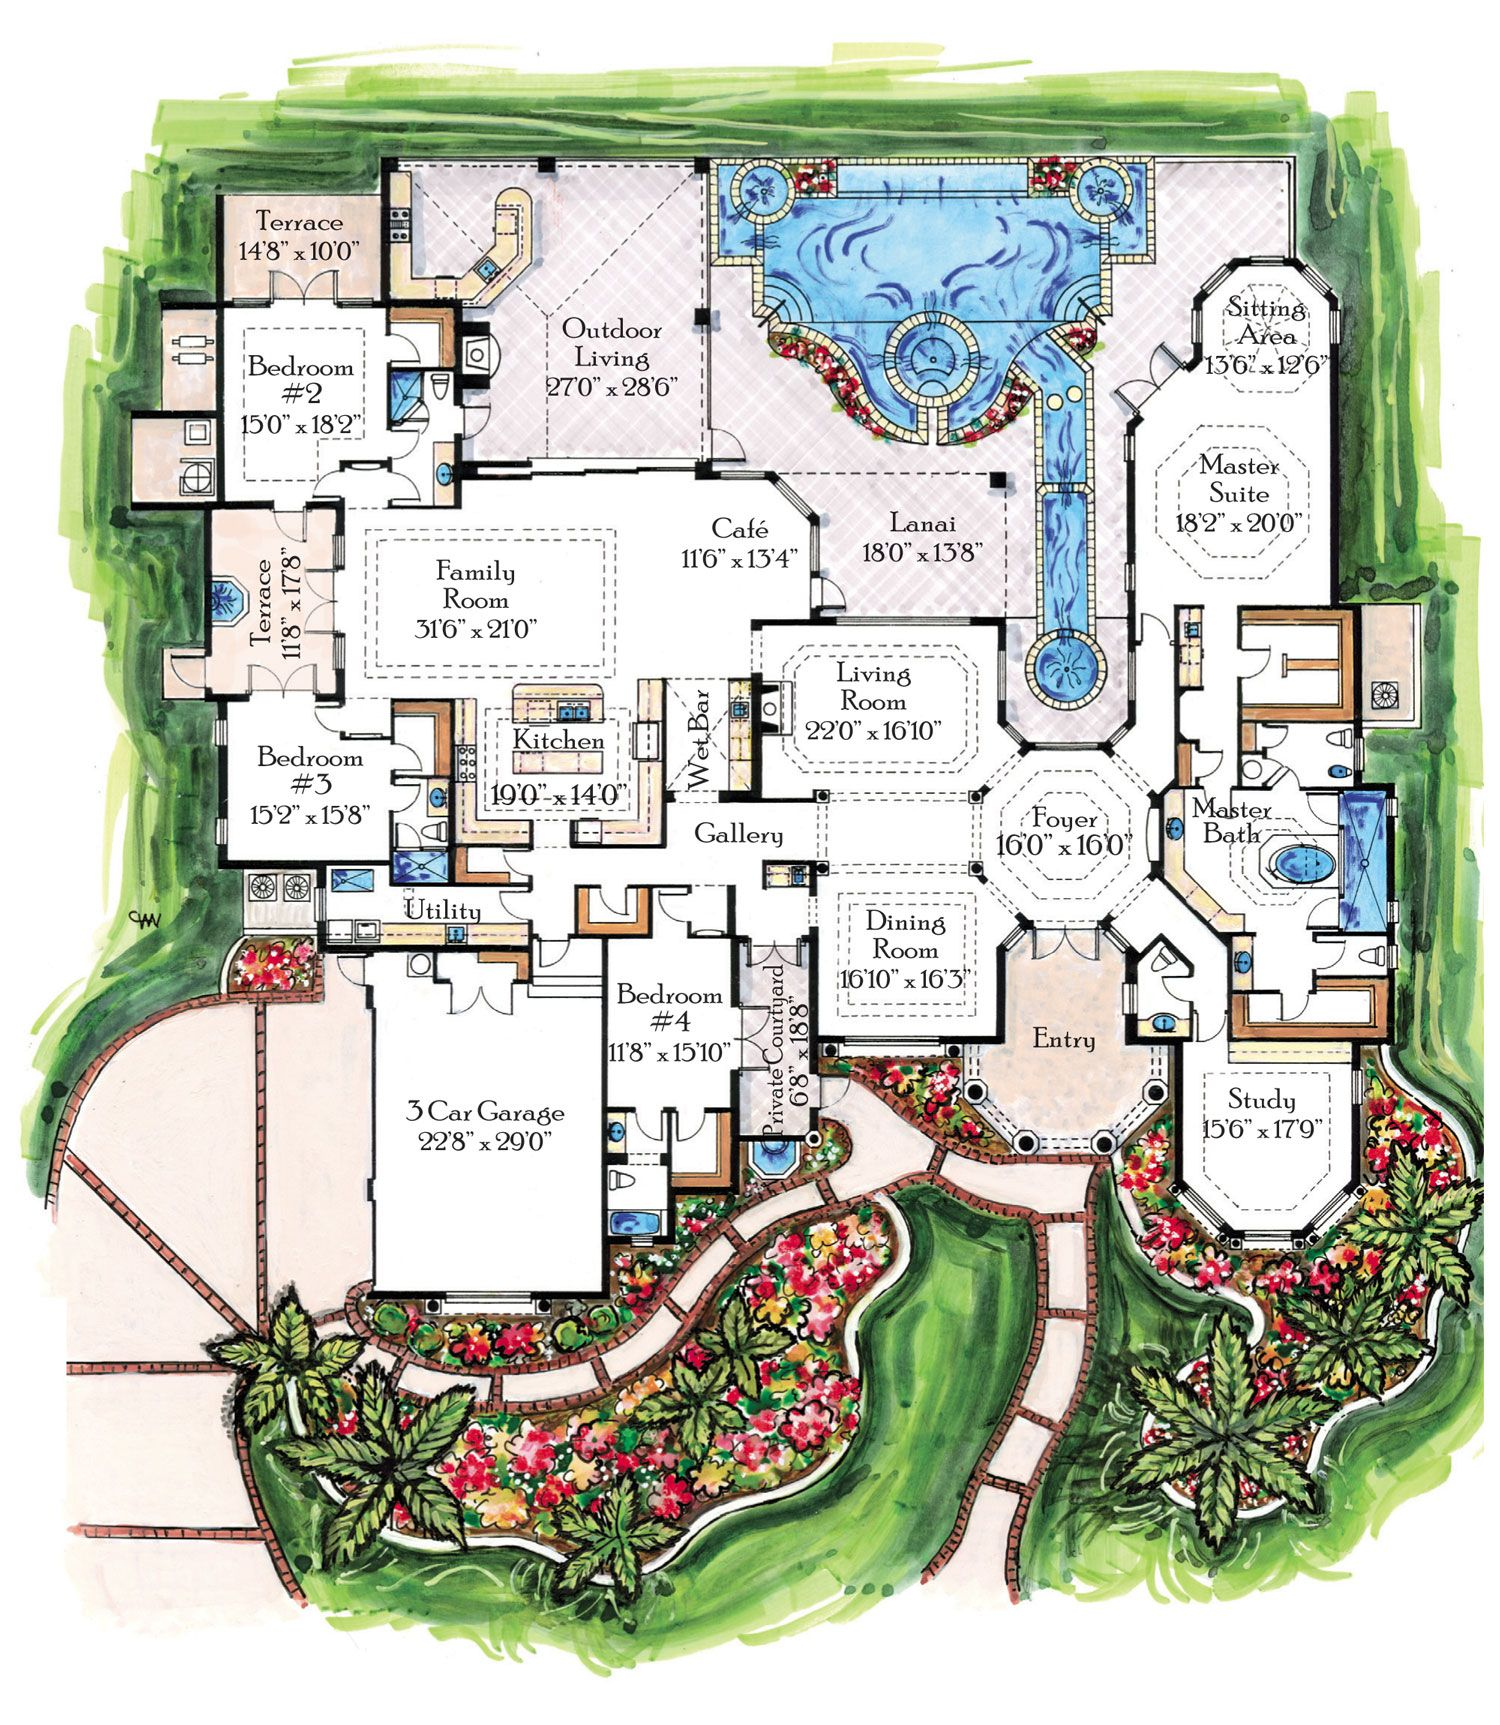 1000+ images about Floorplans on Pinterest - ^